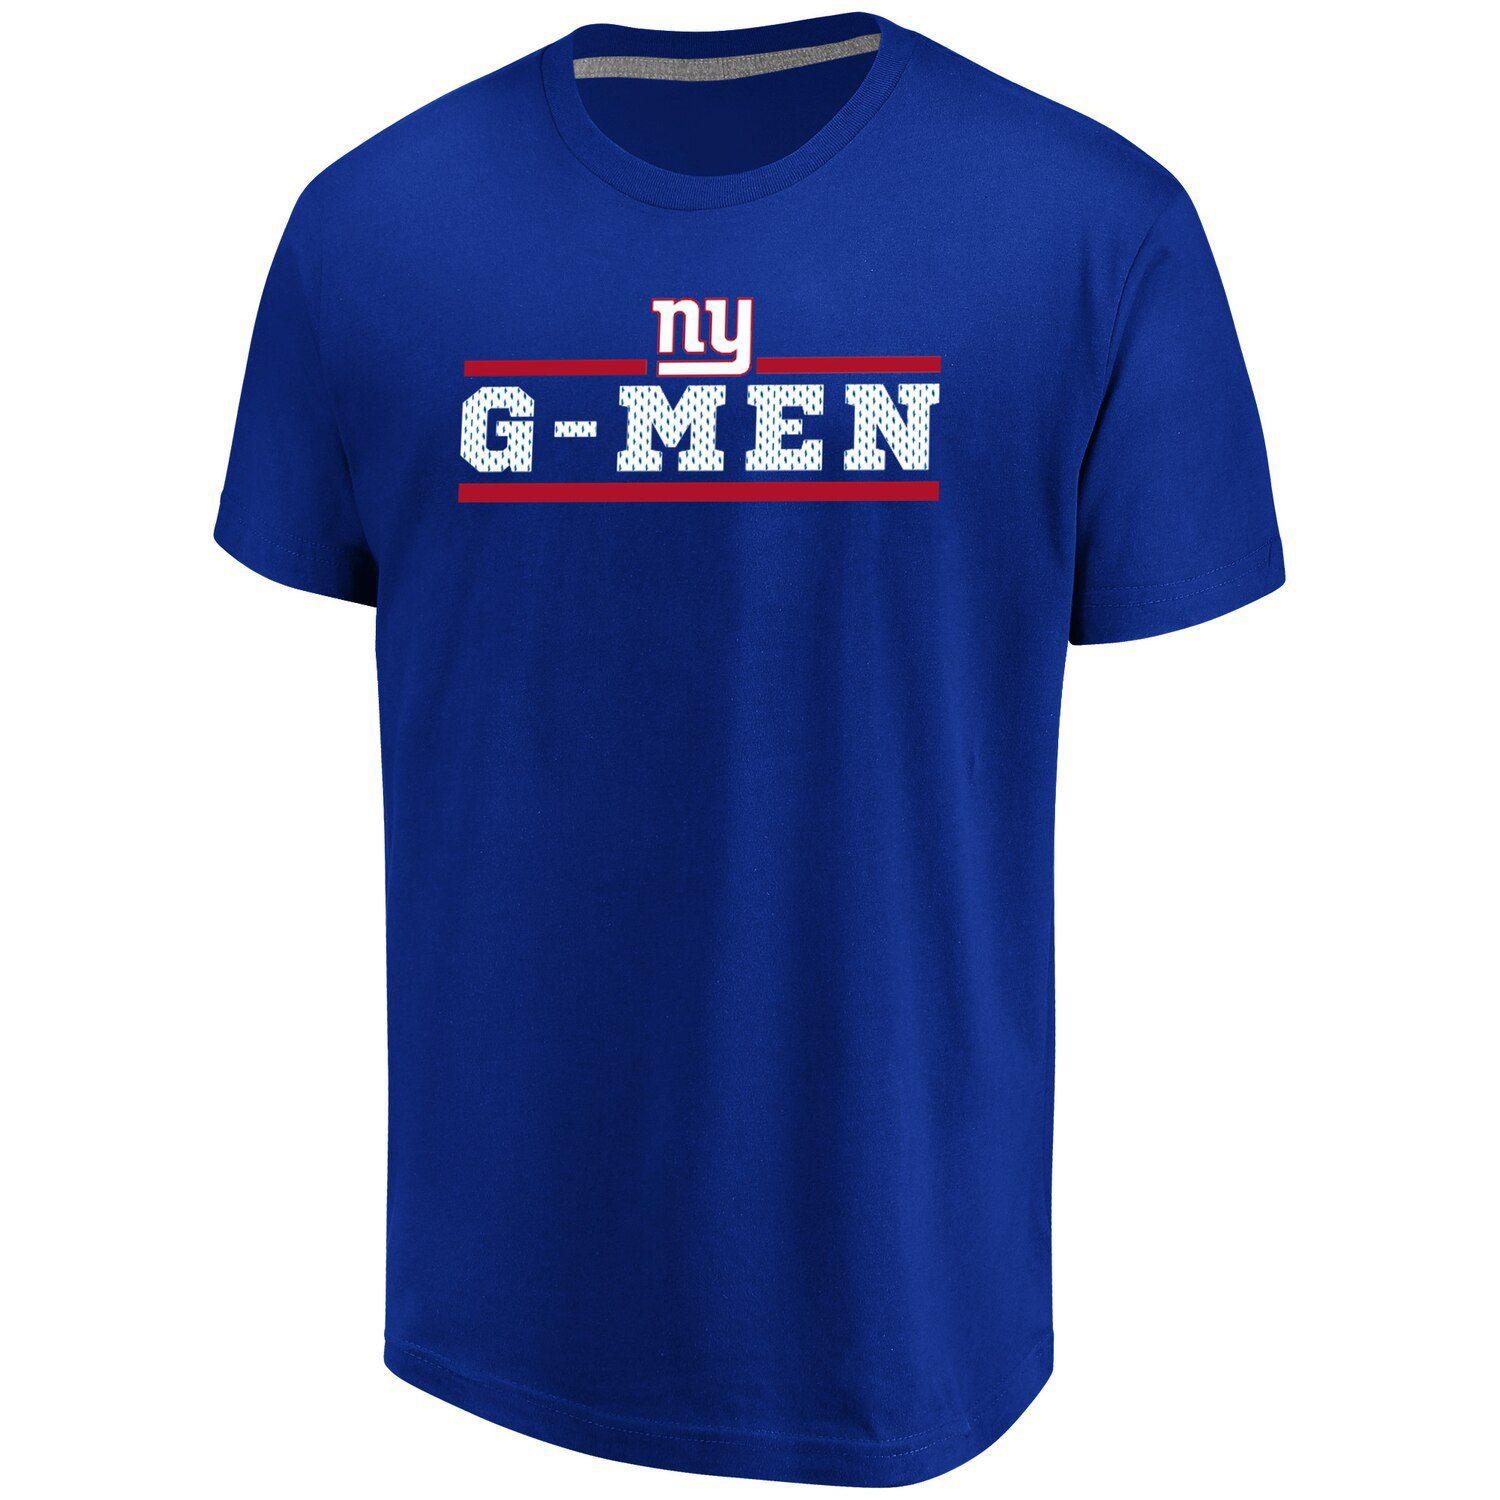 ny giants jersey big and tall